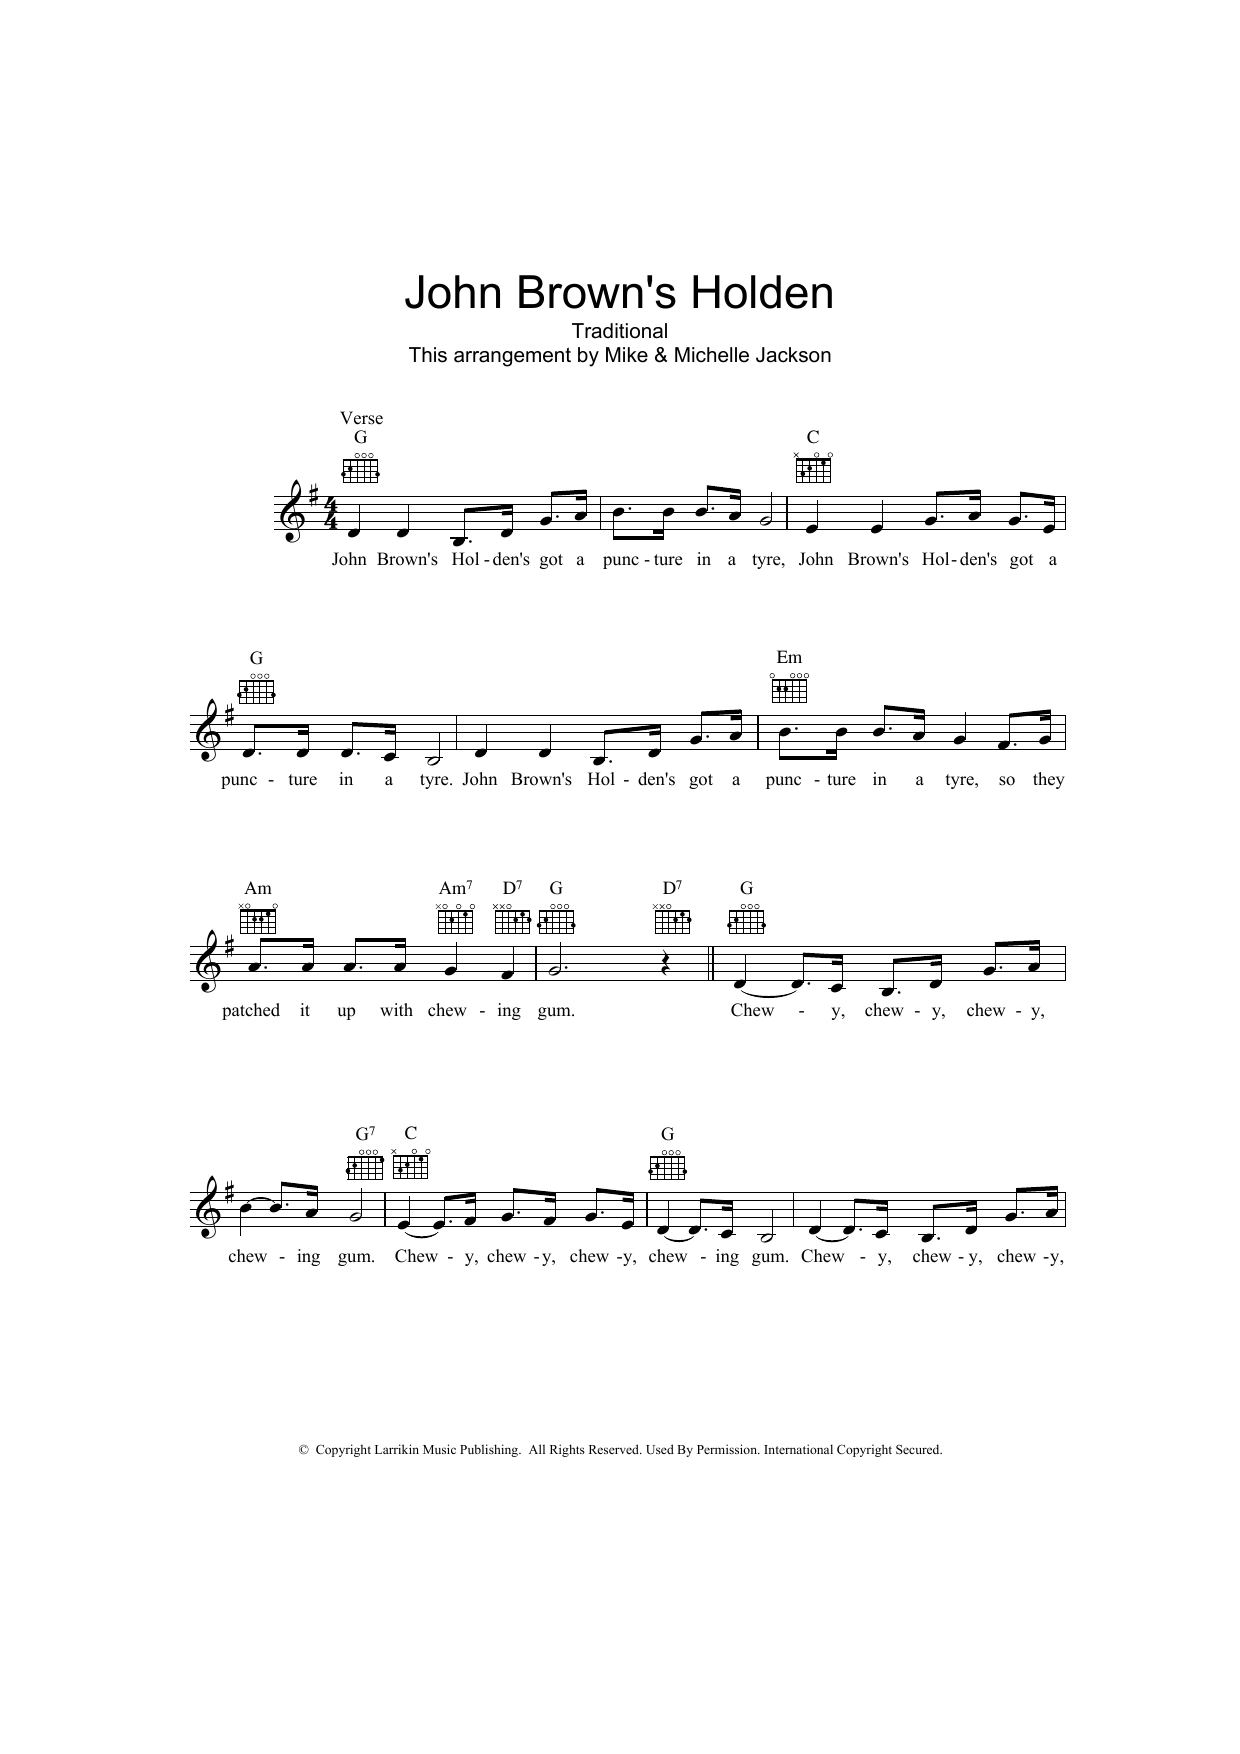 John Brown's Holden Sheet Music